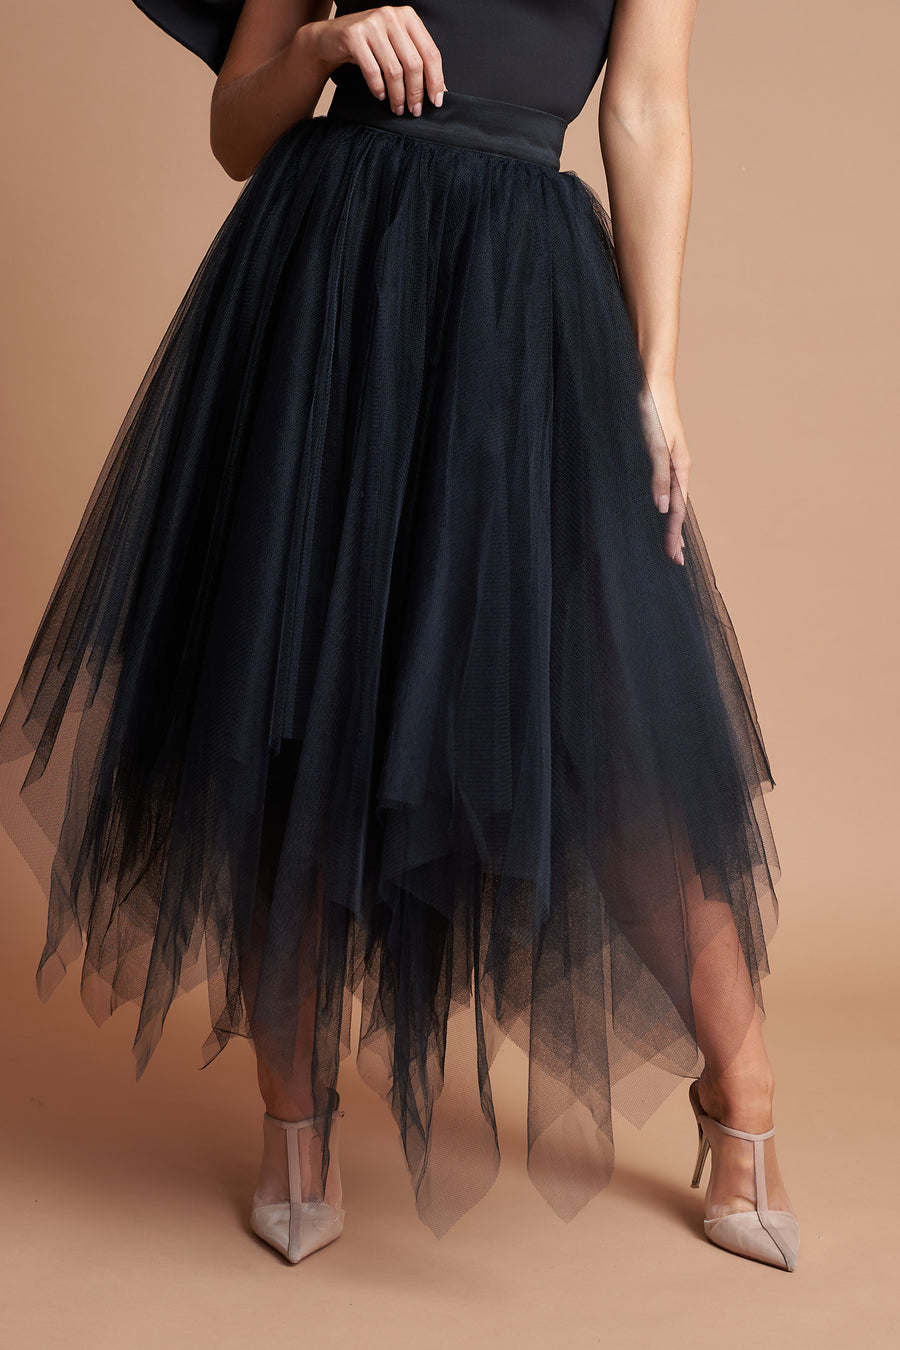 Black Choppy Tulle Skirt